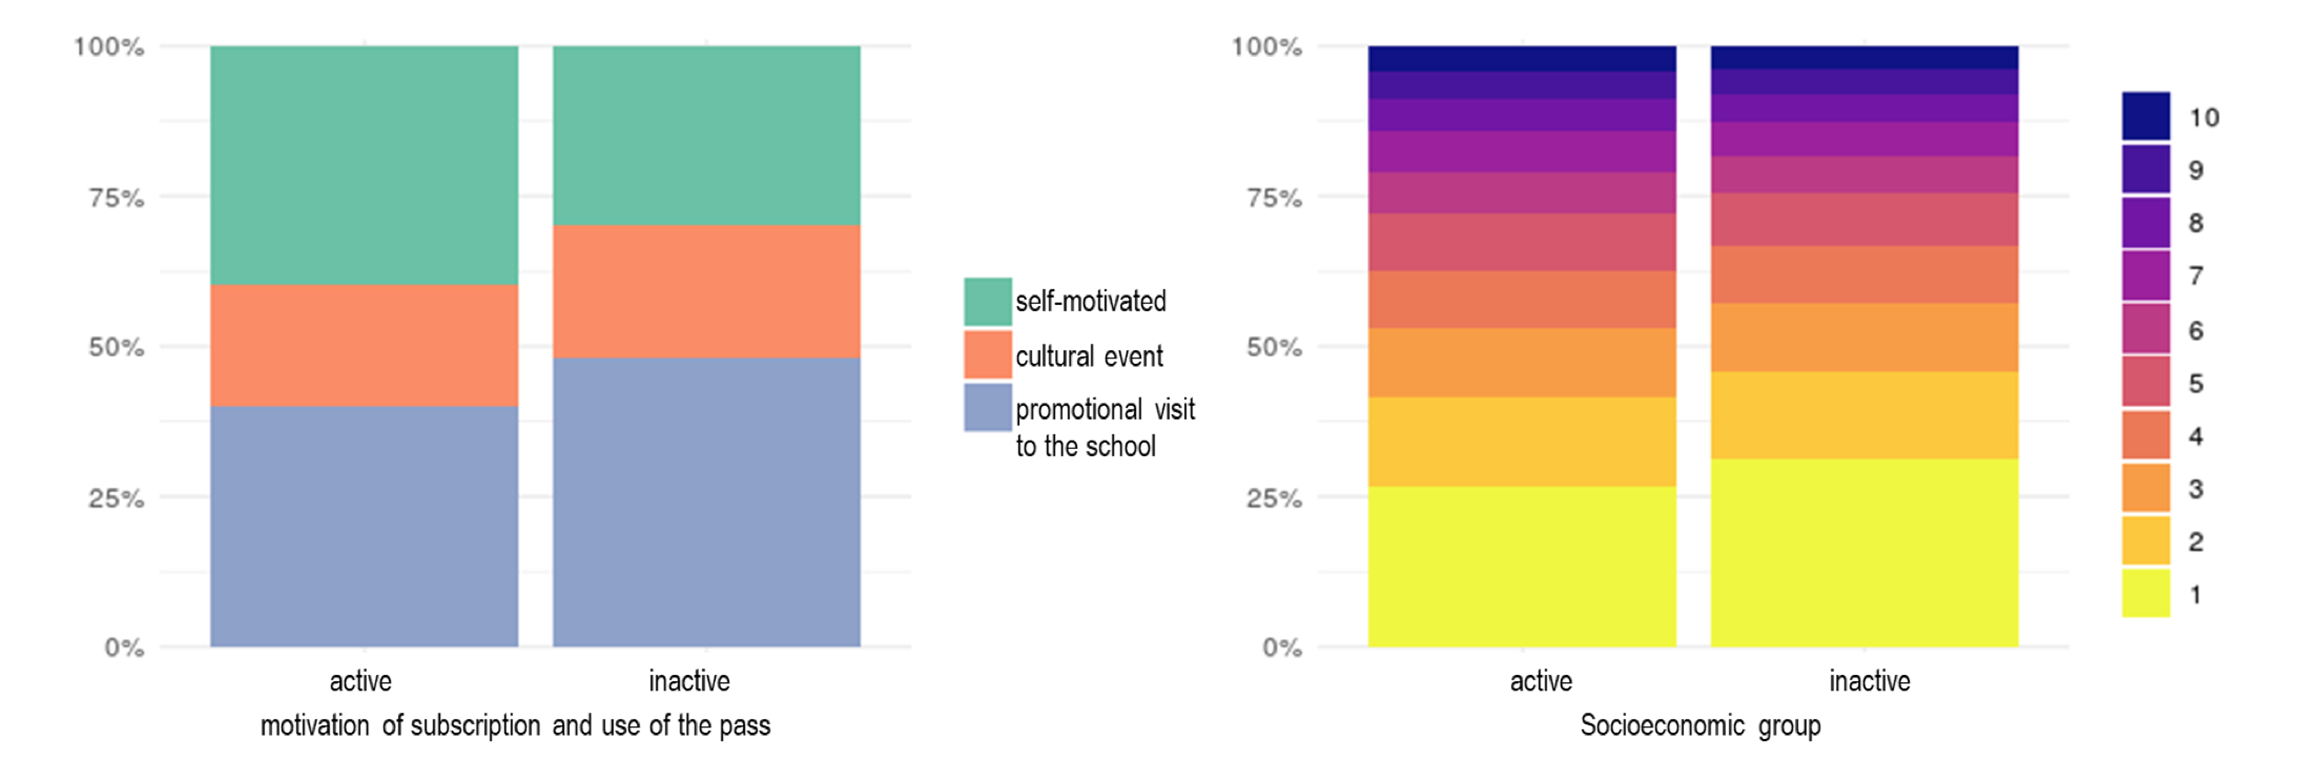 Fig.6. In the left figure (a) the relationship between the motivation of subscription and use of the pass. (green is self-motivated; Orange is a cultural event; and light blue is a promotional visit to the school). The figure on the right (b) shows the relationship between socioeconomic decile and use of the pass (yellow being the richest group).